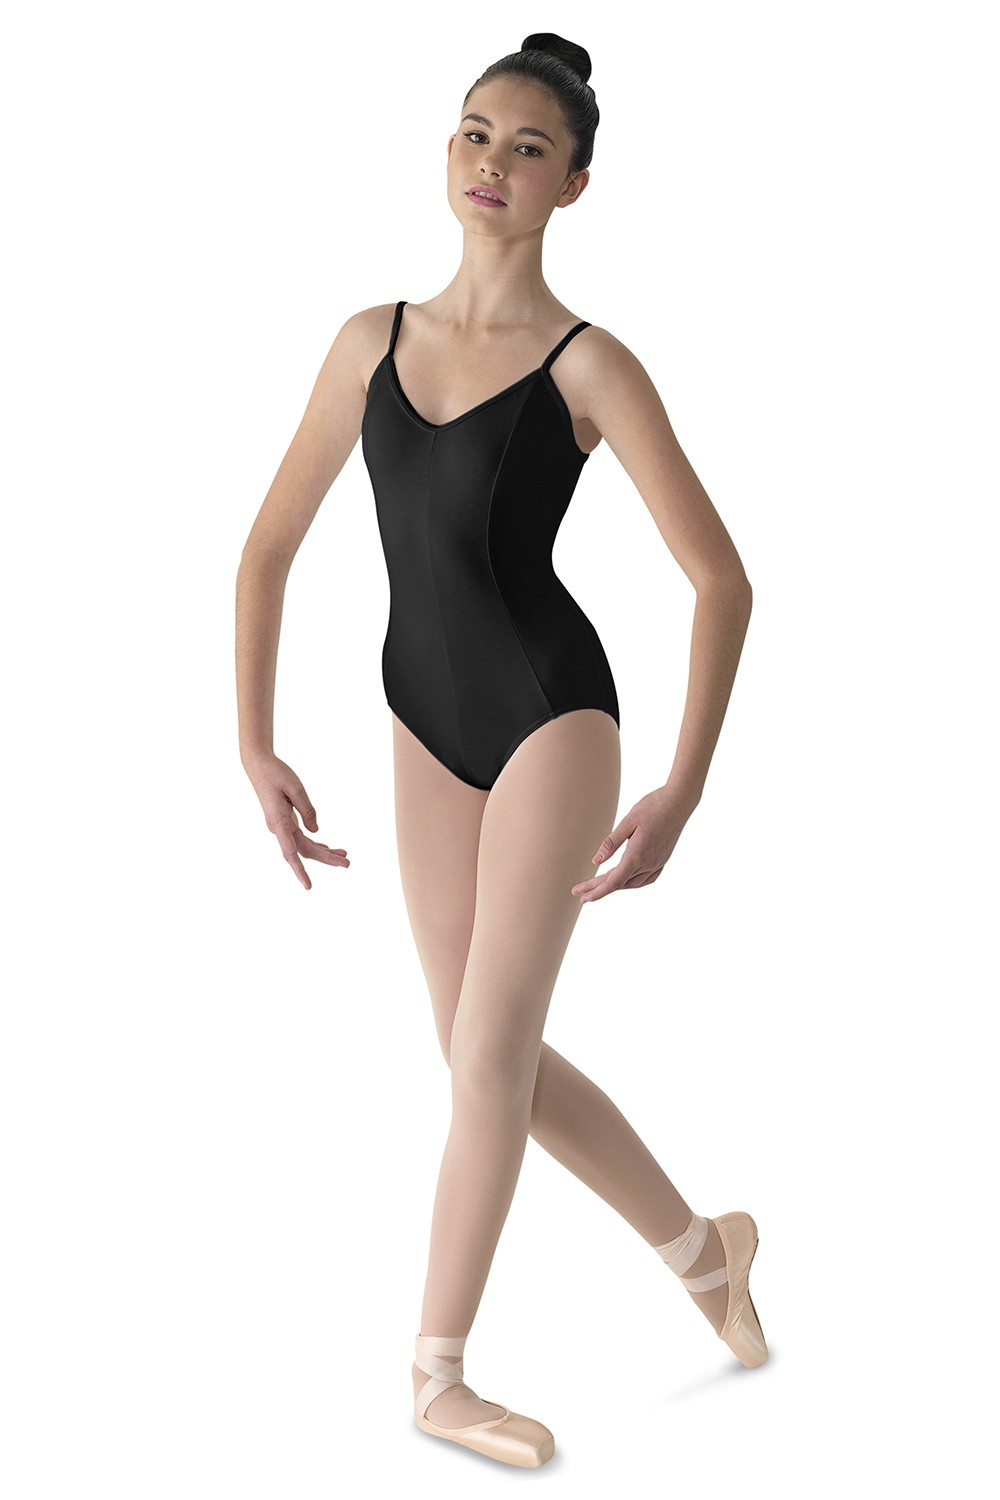 Body Con Scollo A V E Cuciture Principessa Women's Dance Leotards